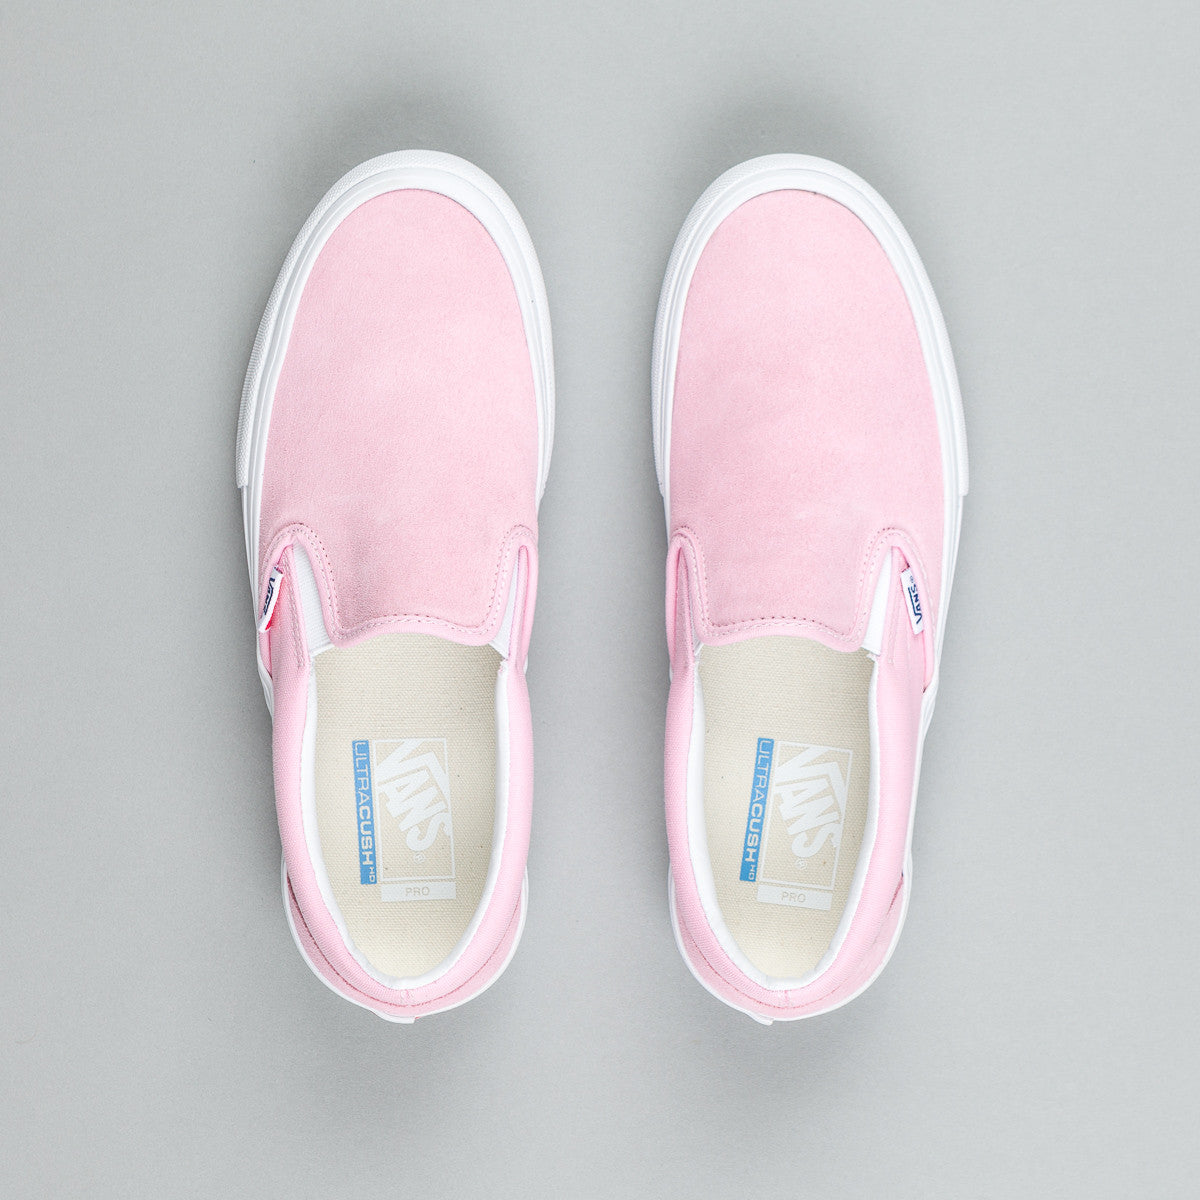 Vans Slip On Pro Shoes - Candy Pink / White